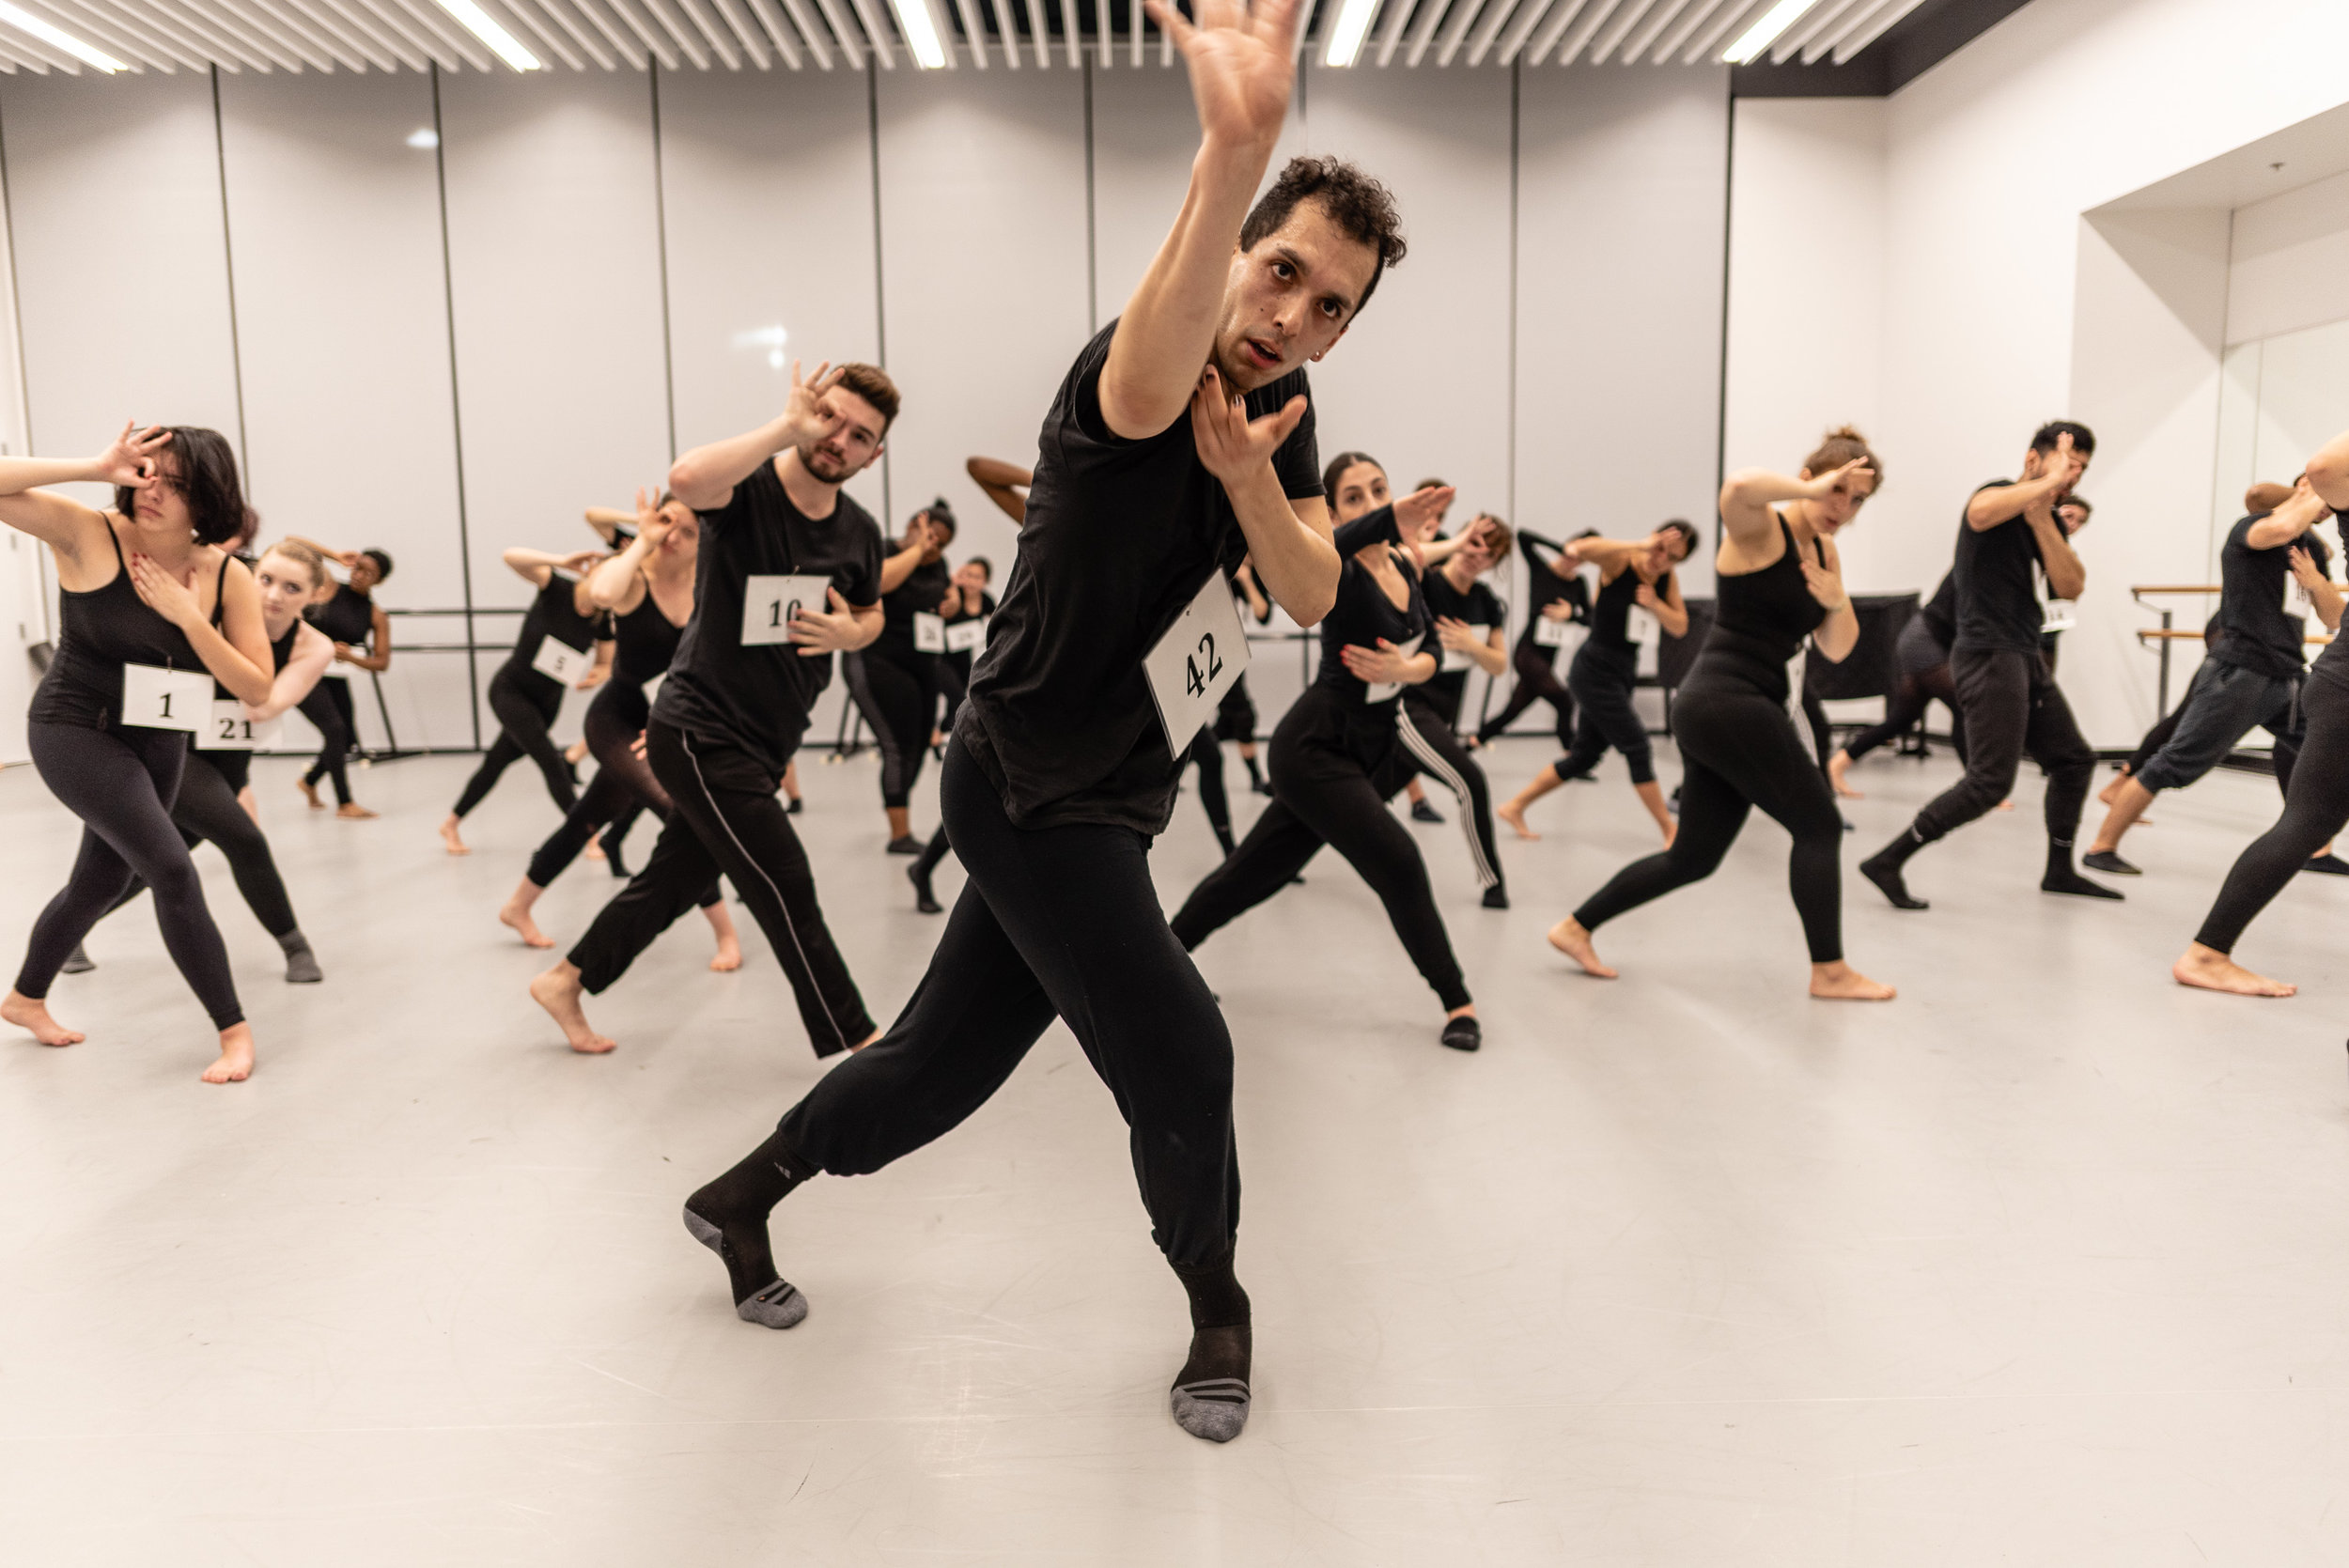 Student choreographer Erik Fine (#42) teaches SMC dancers a combination during the auditions for Synapse Dance Theater in SMC's Core Performance Center on Thursday, Feb. 21, 2019. The title of Fine's piece is the number seven written in tally marks. Synapse Dance Theater will feature 11 works by SMC student choreographers, faculty, and guest artist Jay Carlon on the Broad Stage at SMC's Performing Arts Center campus on Friday and Saturday, May 24 and 25. (Glenn Zucman/The Corsair)